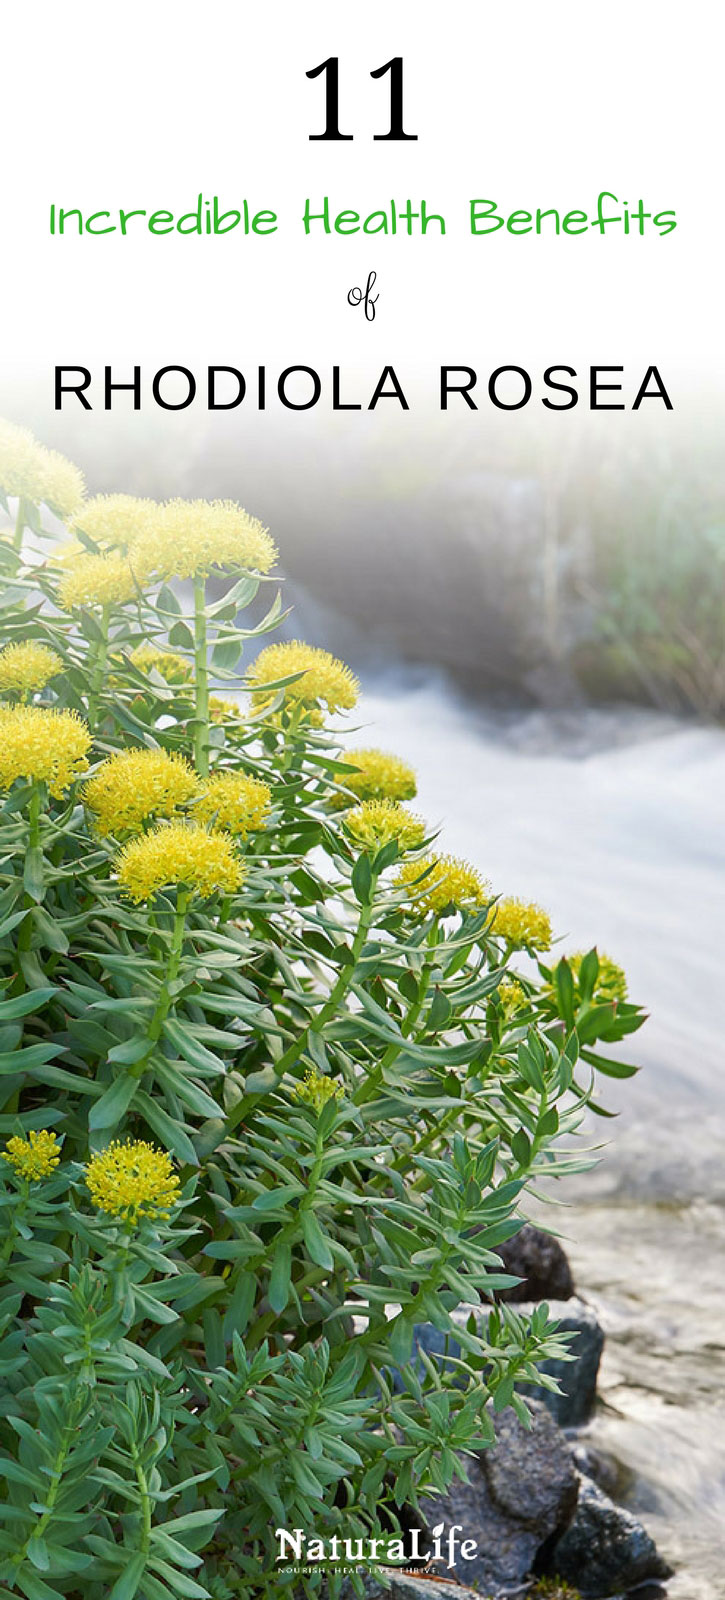 11 Incredible Rhodiola Benefits That Could Change Your Life